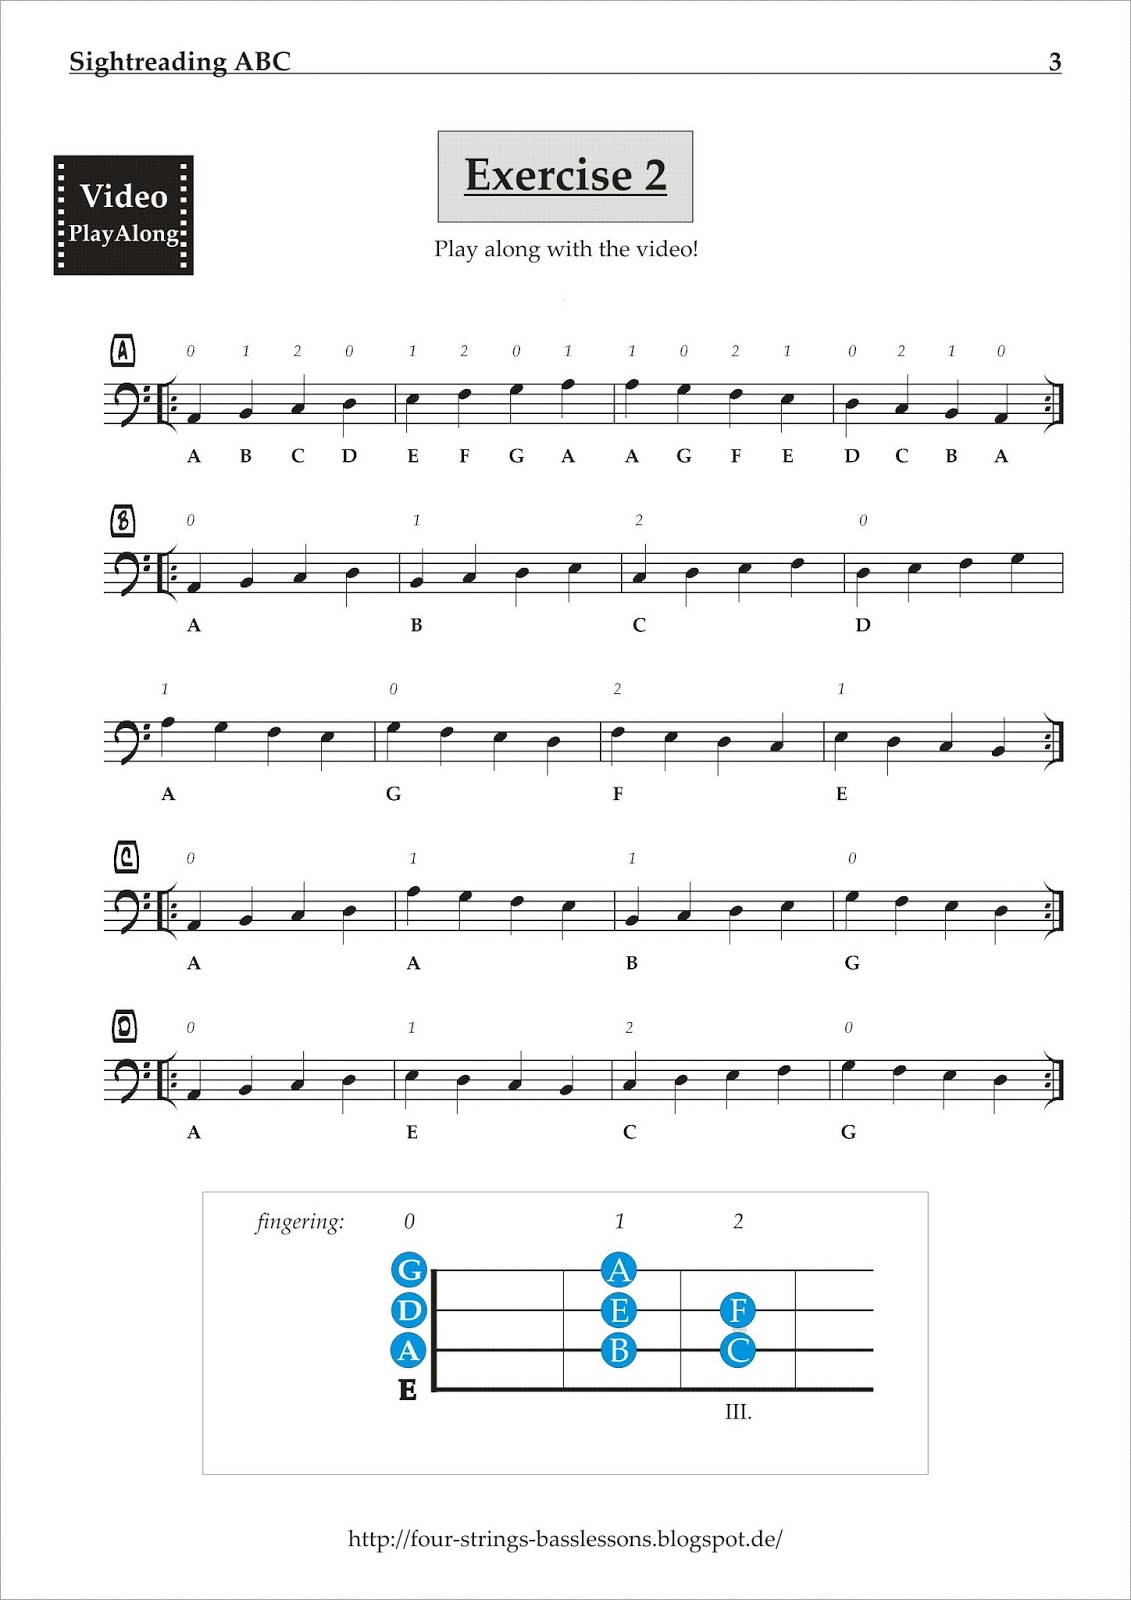 four strings basslessons weekly basslines 179 sightreading exercises. Black Bedroom Furniture Sets. Home Design Ideas